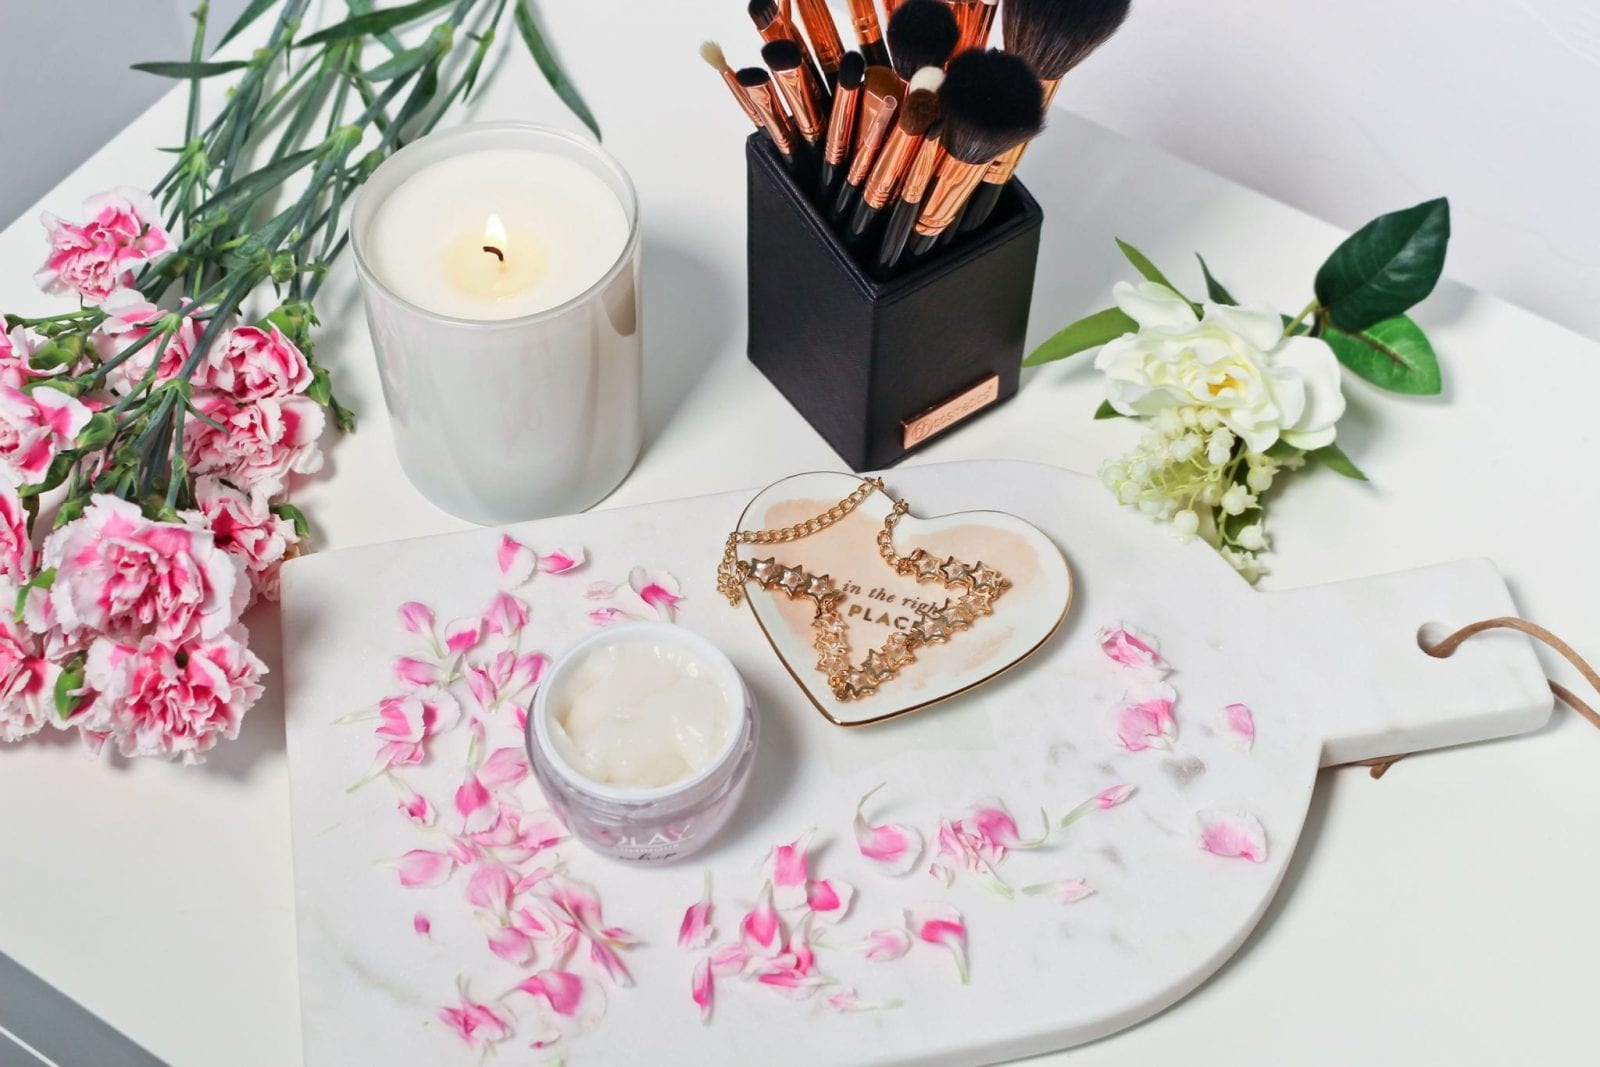 This is a flat lay shot of the Olay Whips Moisturizer, along with other pretty items like a necklace, pink flowers and such.